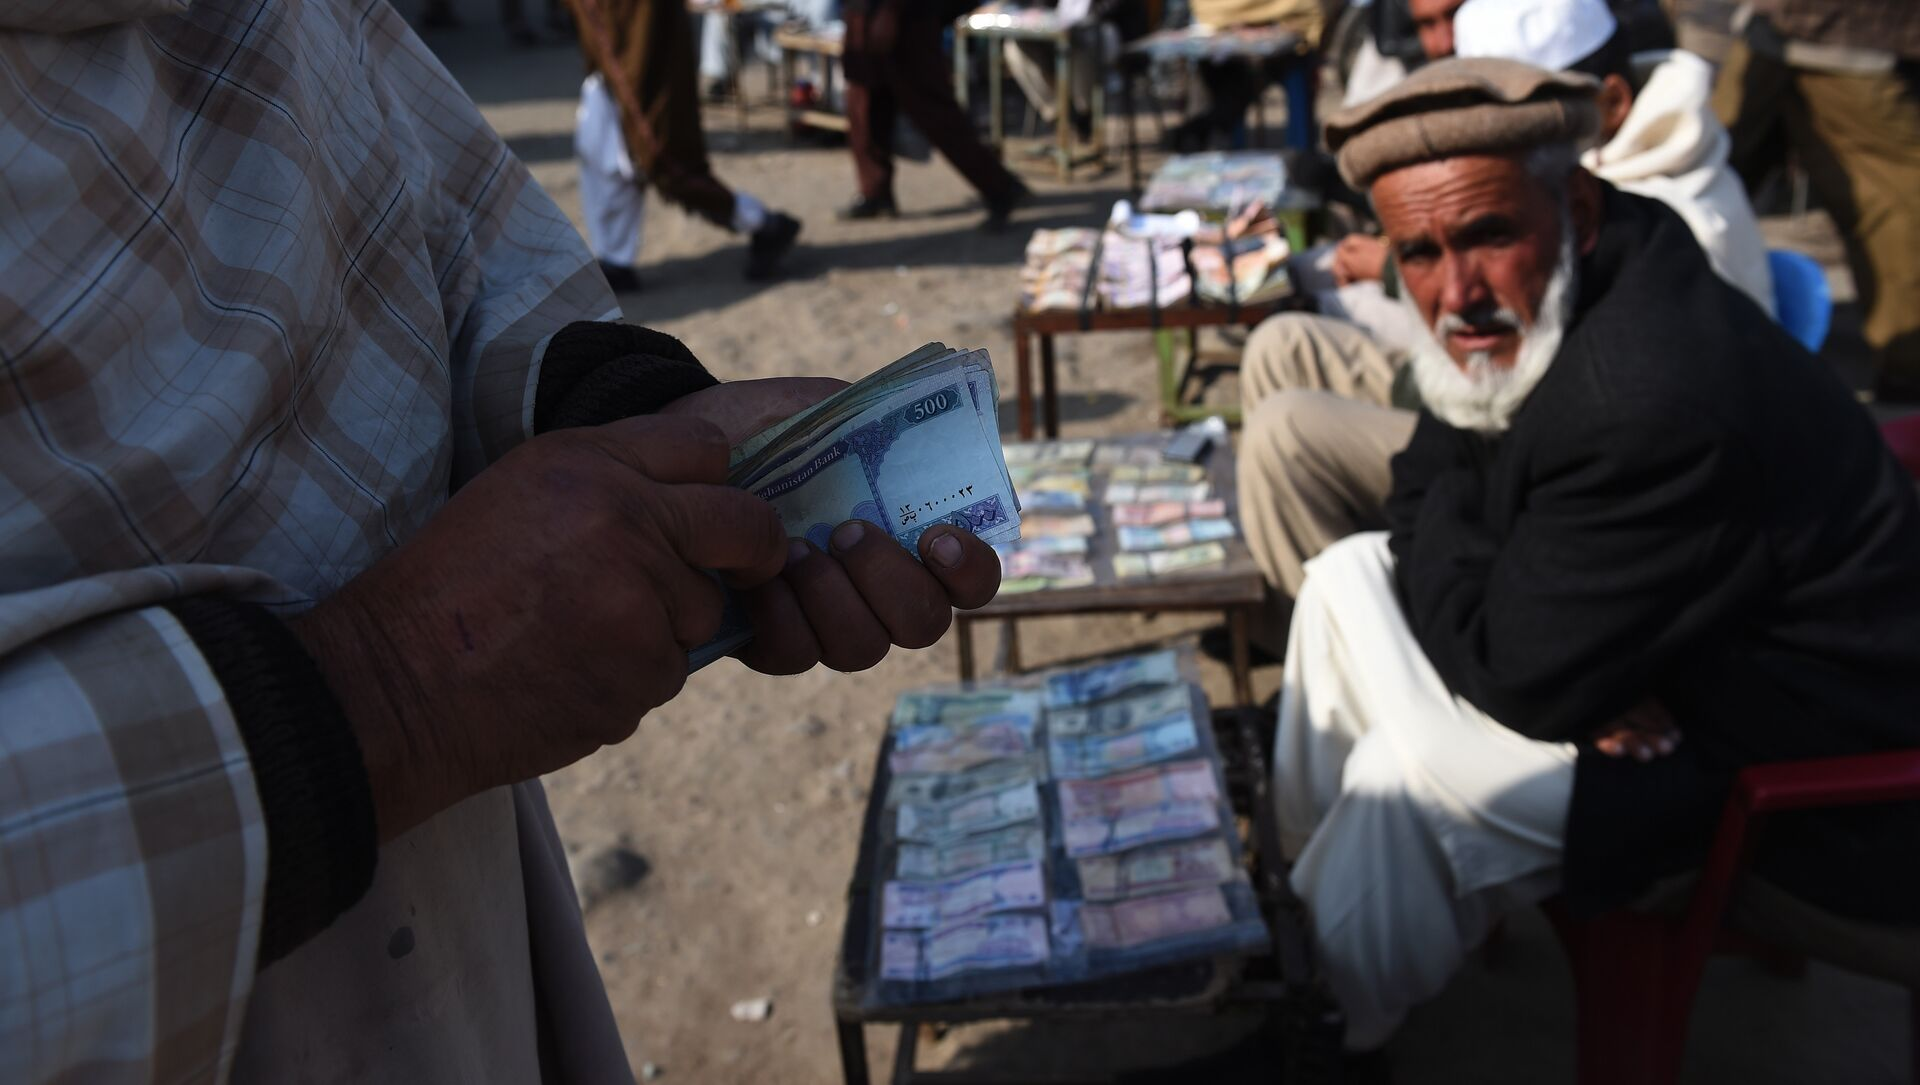 In this photograph taken on December 29, 2014, an Afghan customer (L) counts his Afghani currency notes at a currency exchange market along the roadside in Kabul - Sputnik International, 1920, 16.08.2021